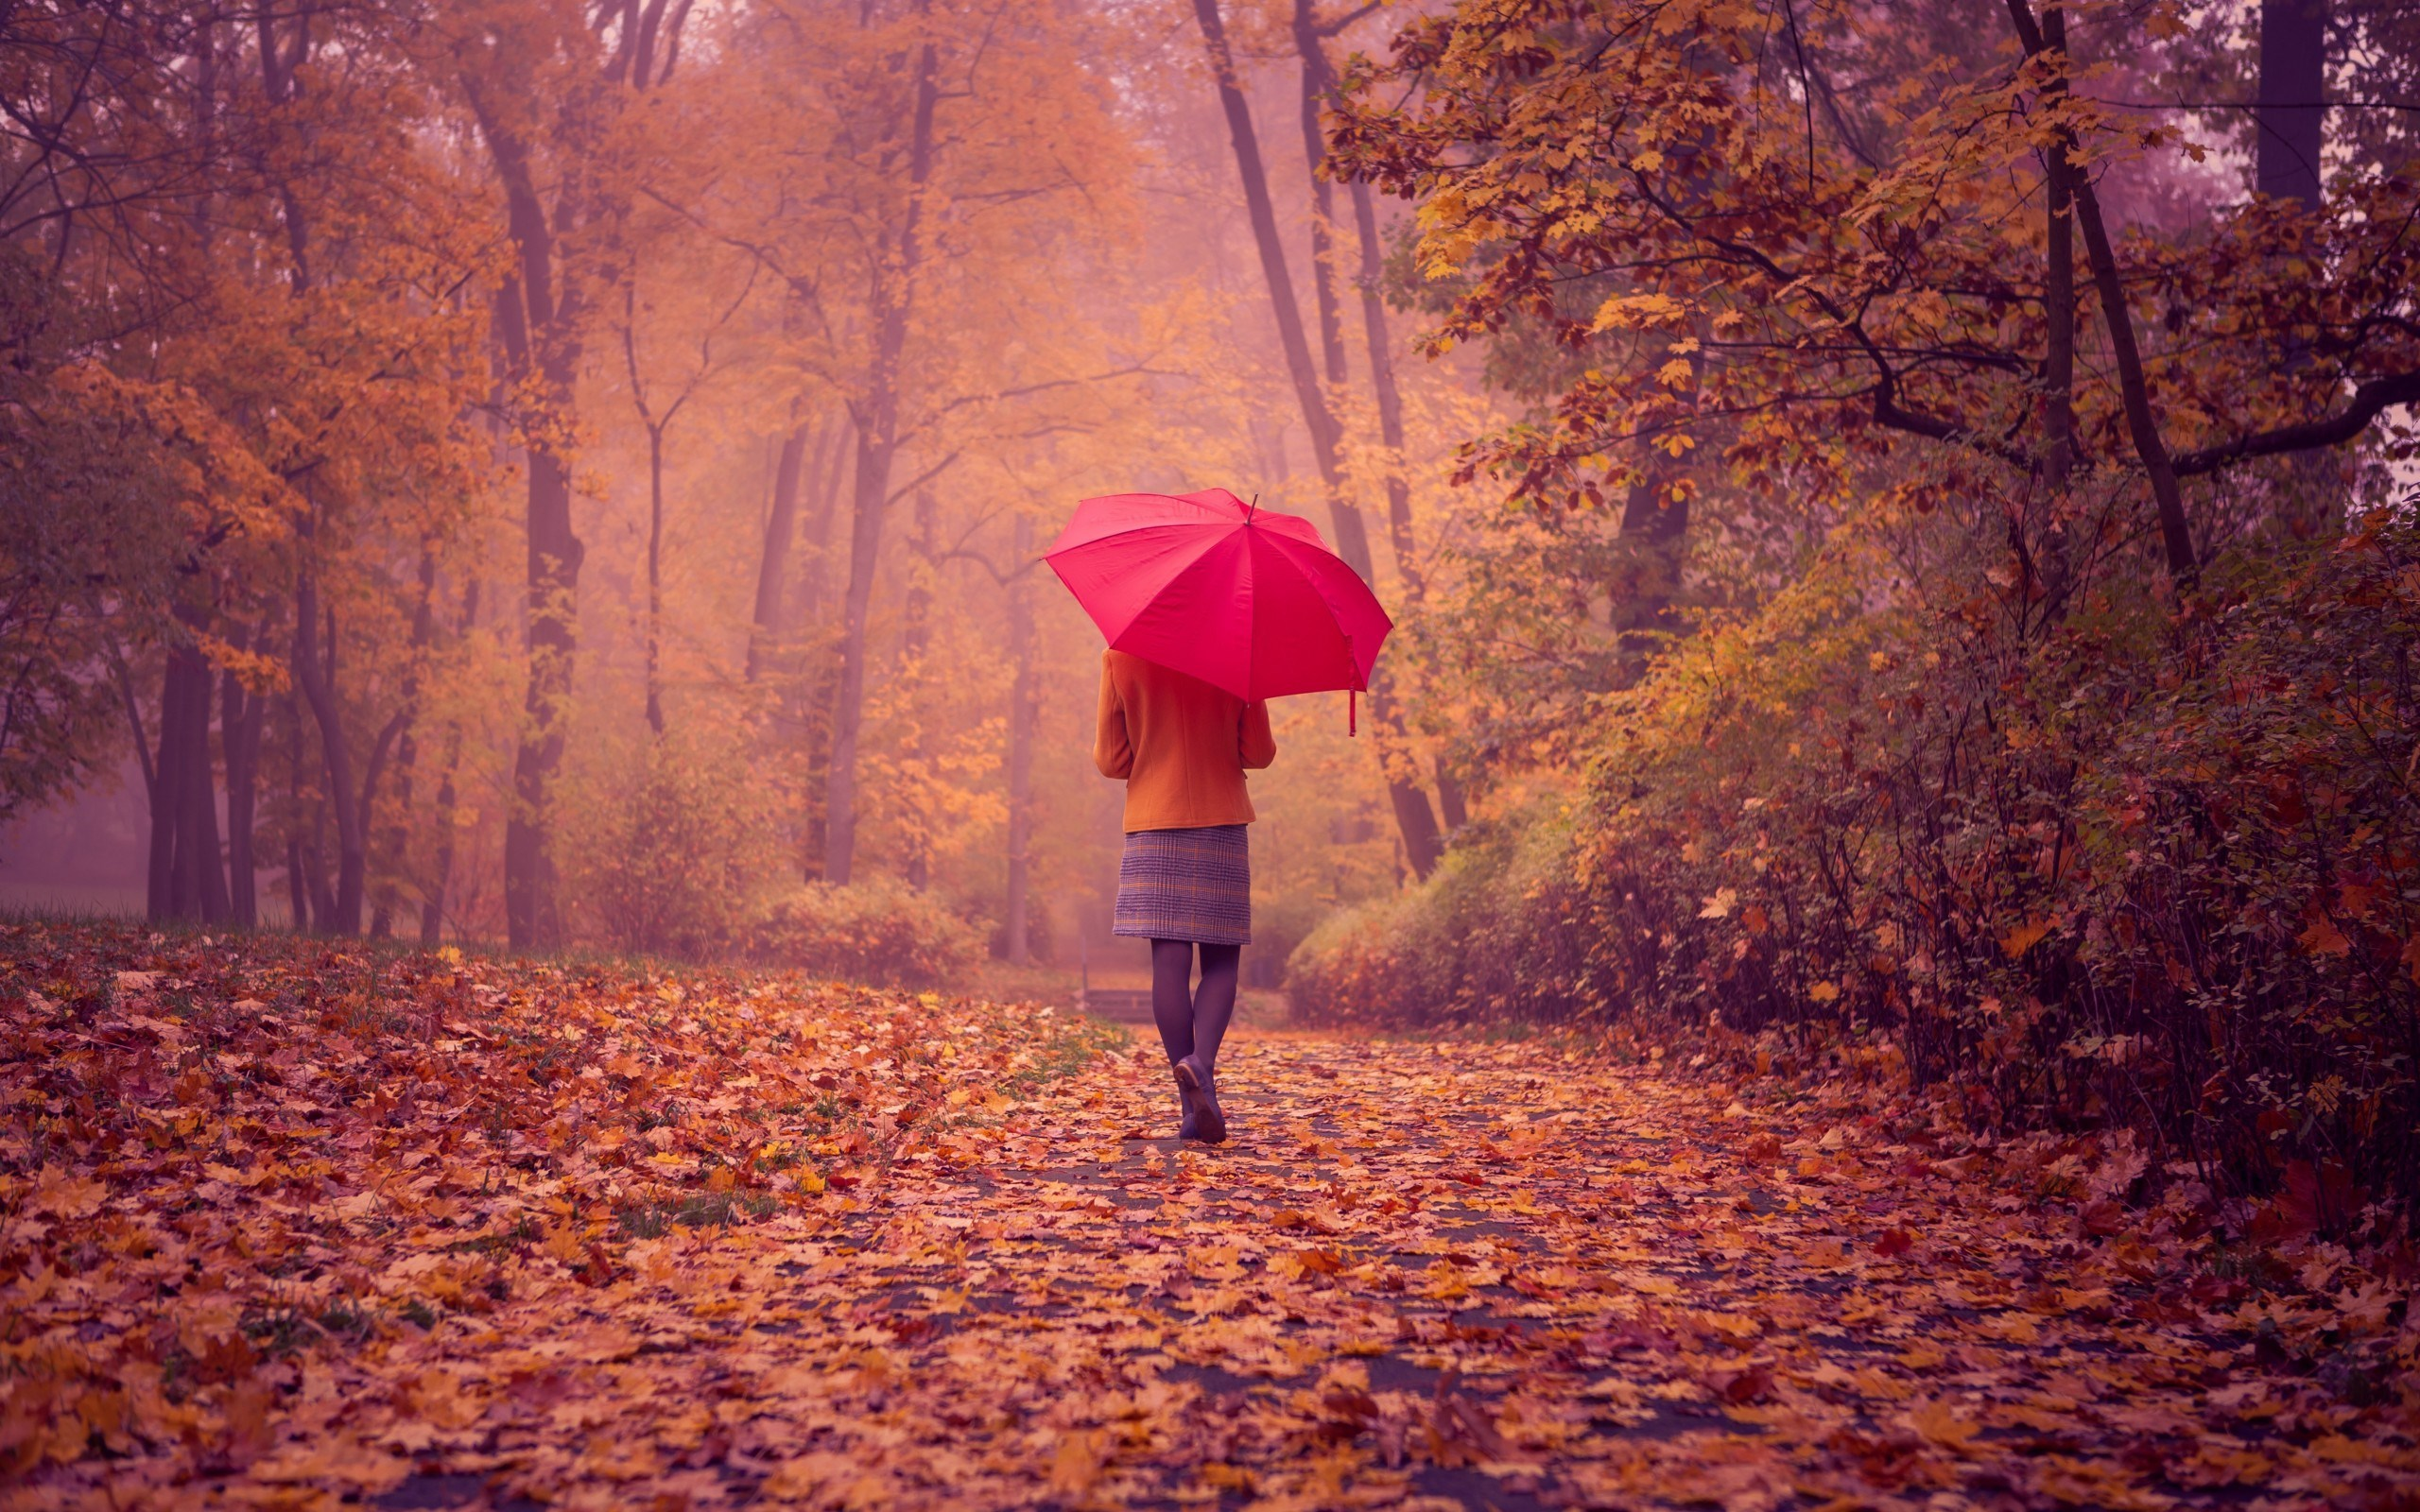 6987575-girl-red-umbrella-fall-road-nature